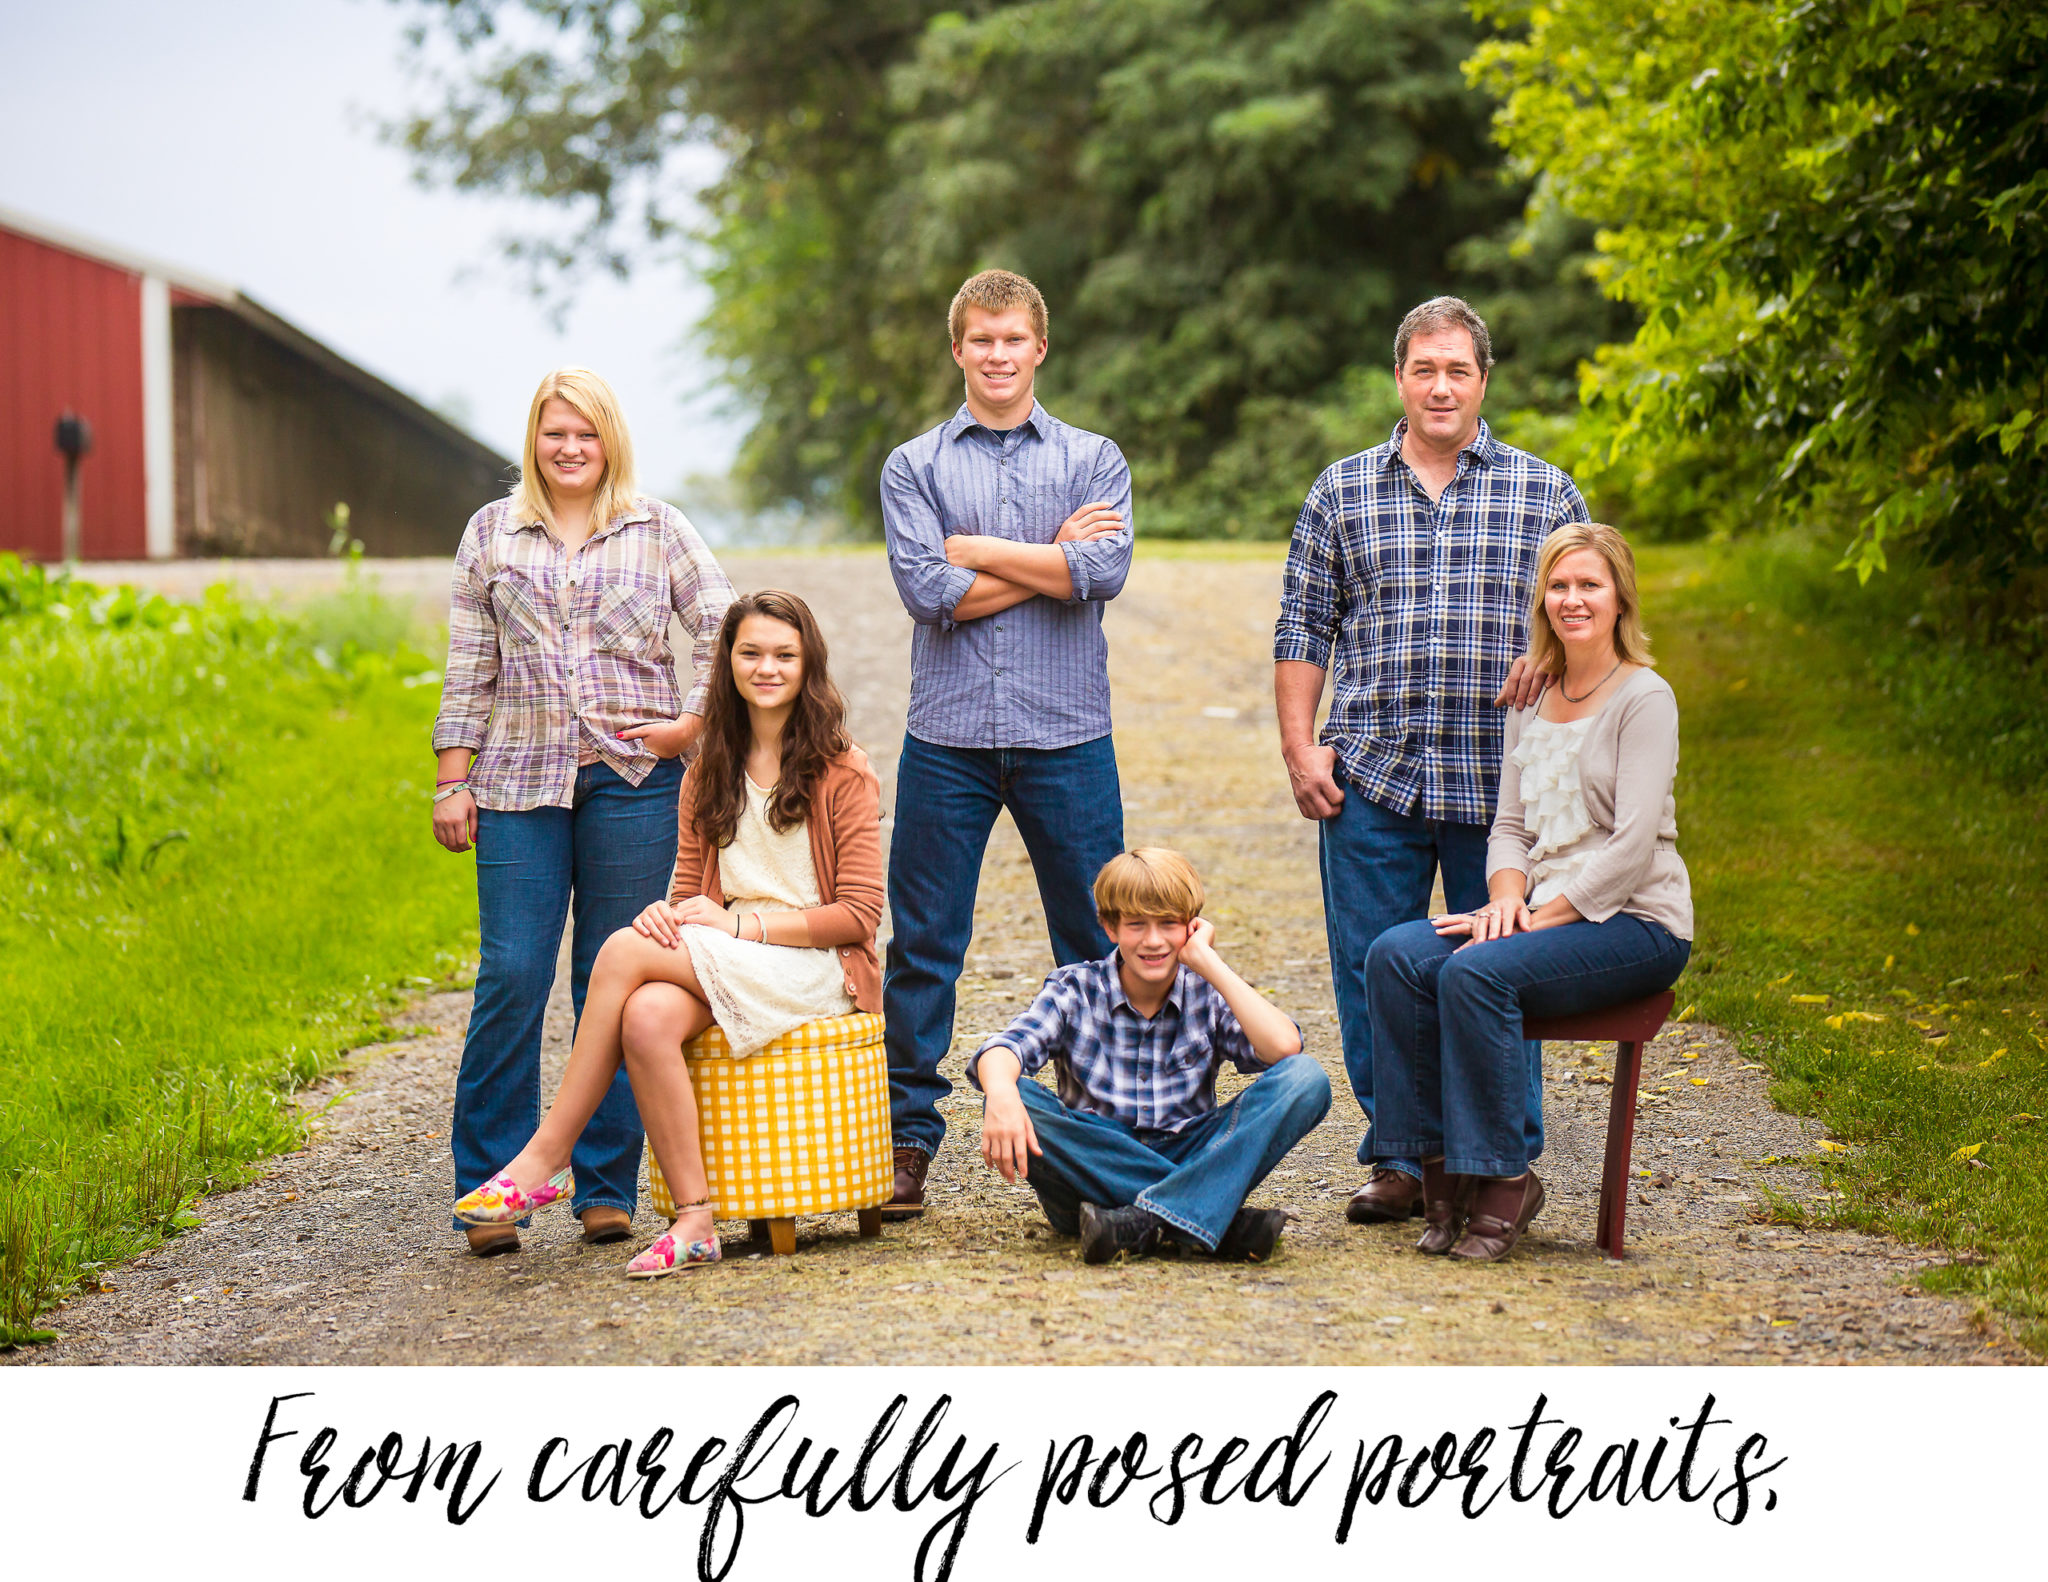 rhinehart-photography-2020-family-portrait-packages31